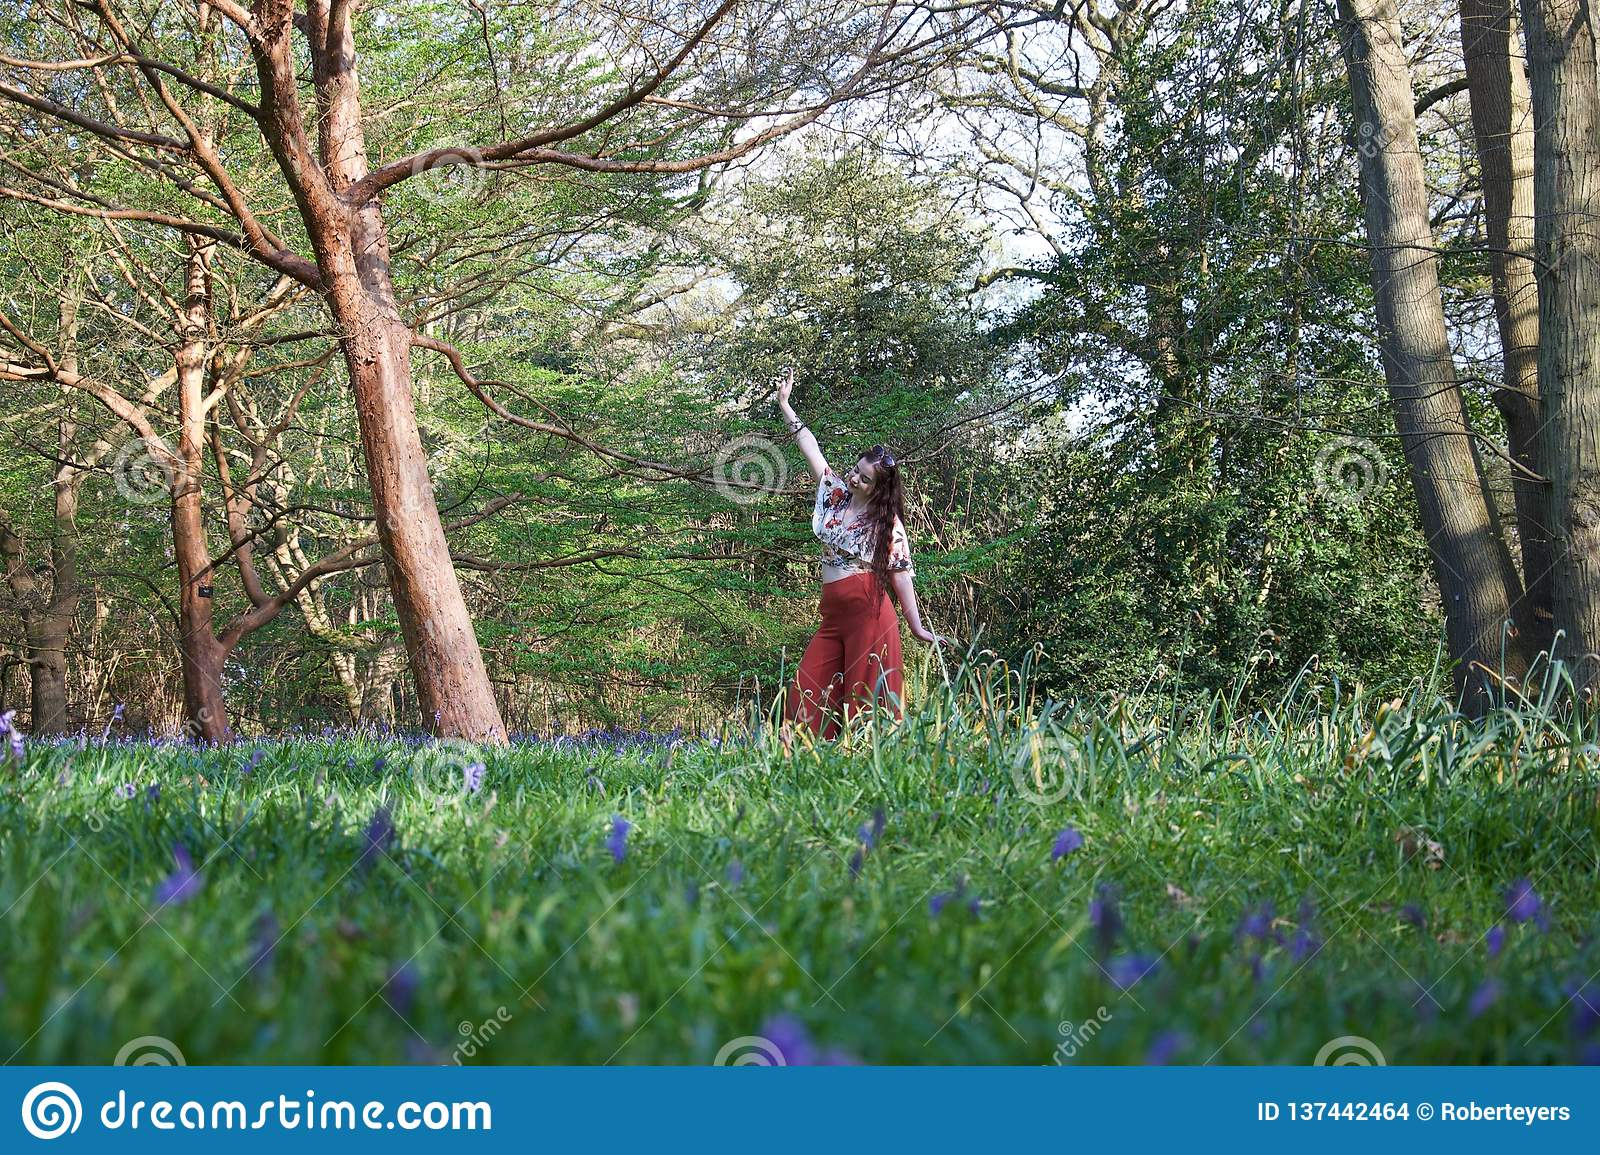 Fashionable lady posing in an English wood with bluebells and trees